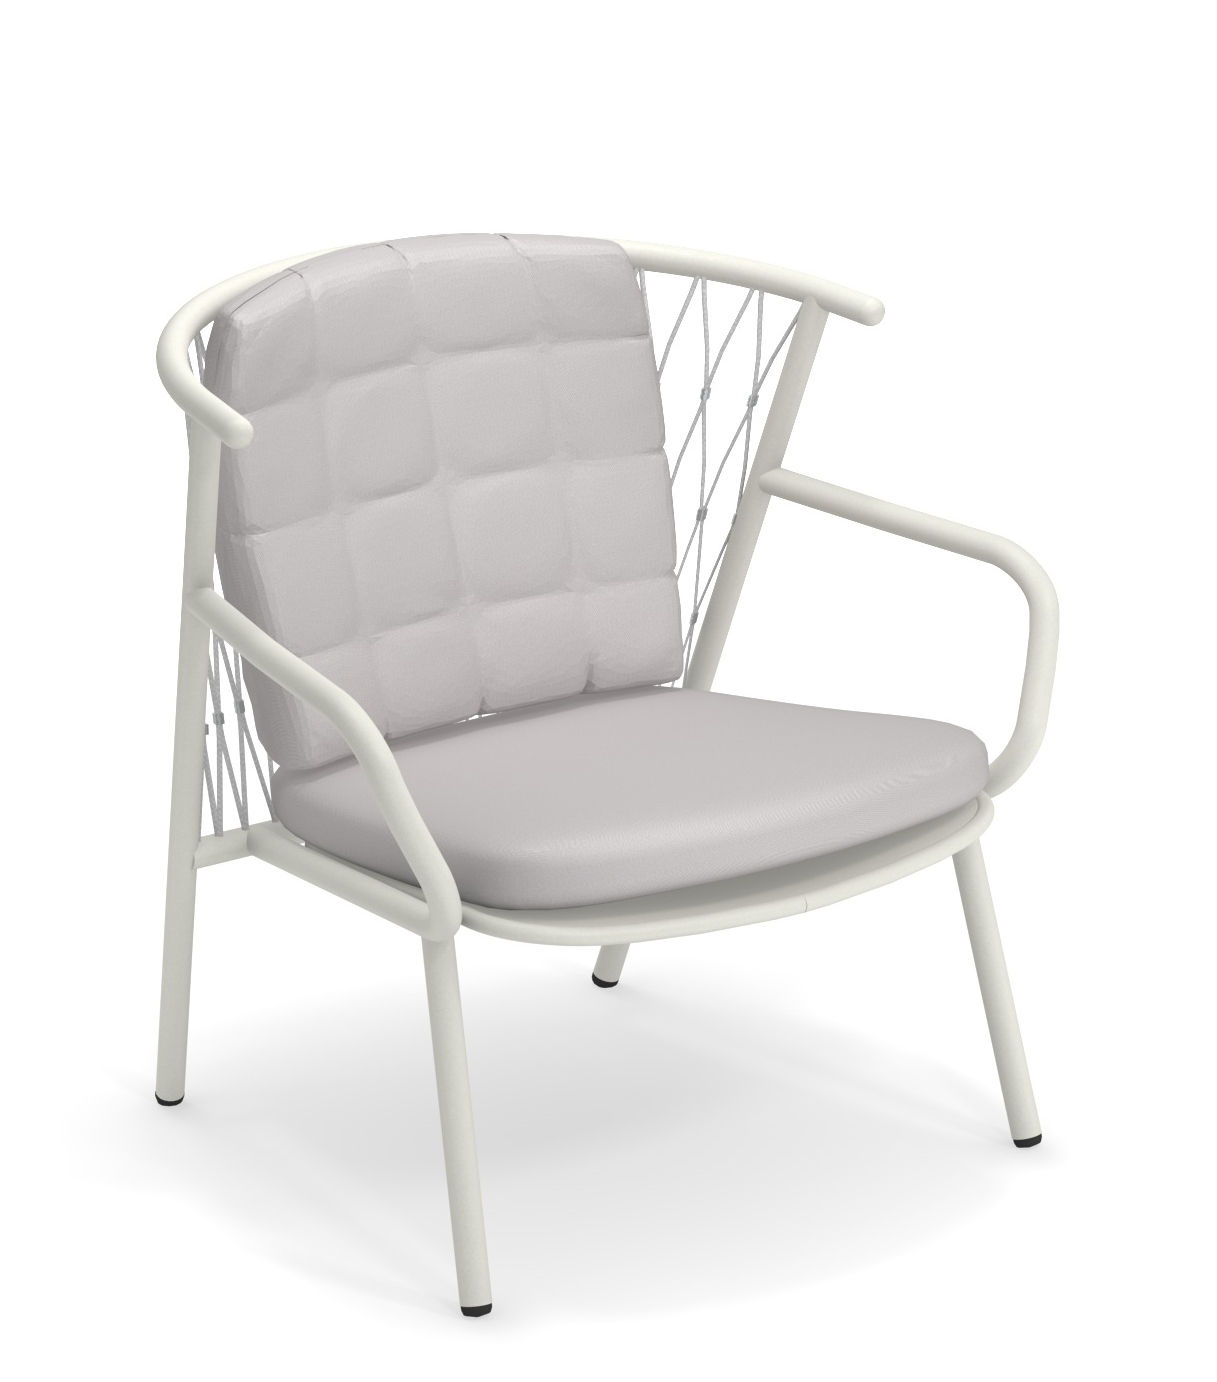 Furniture - Armchairs - Nef Low armchair - / Backrest H 83 cm by Emu - White / Grey backrest - Cordes synthétiques, Varnished aluminium